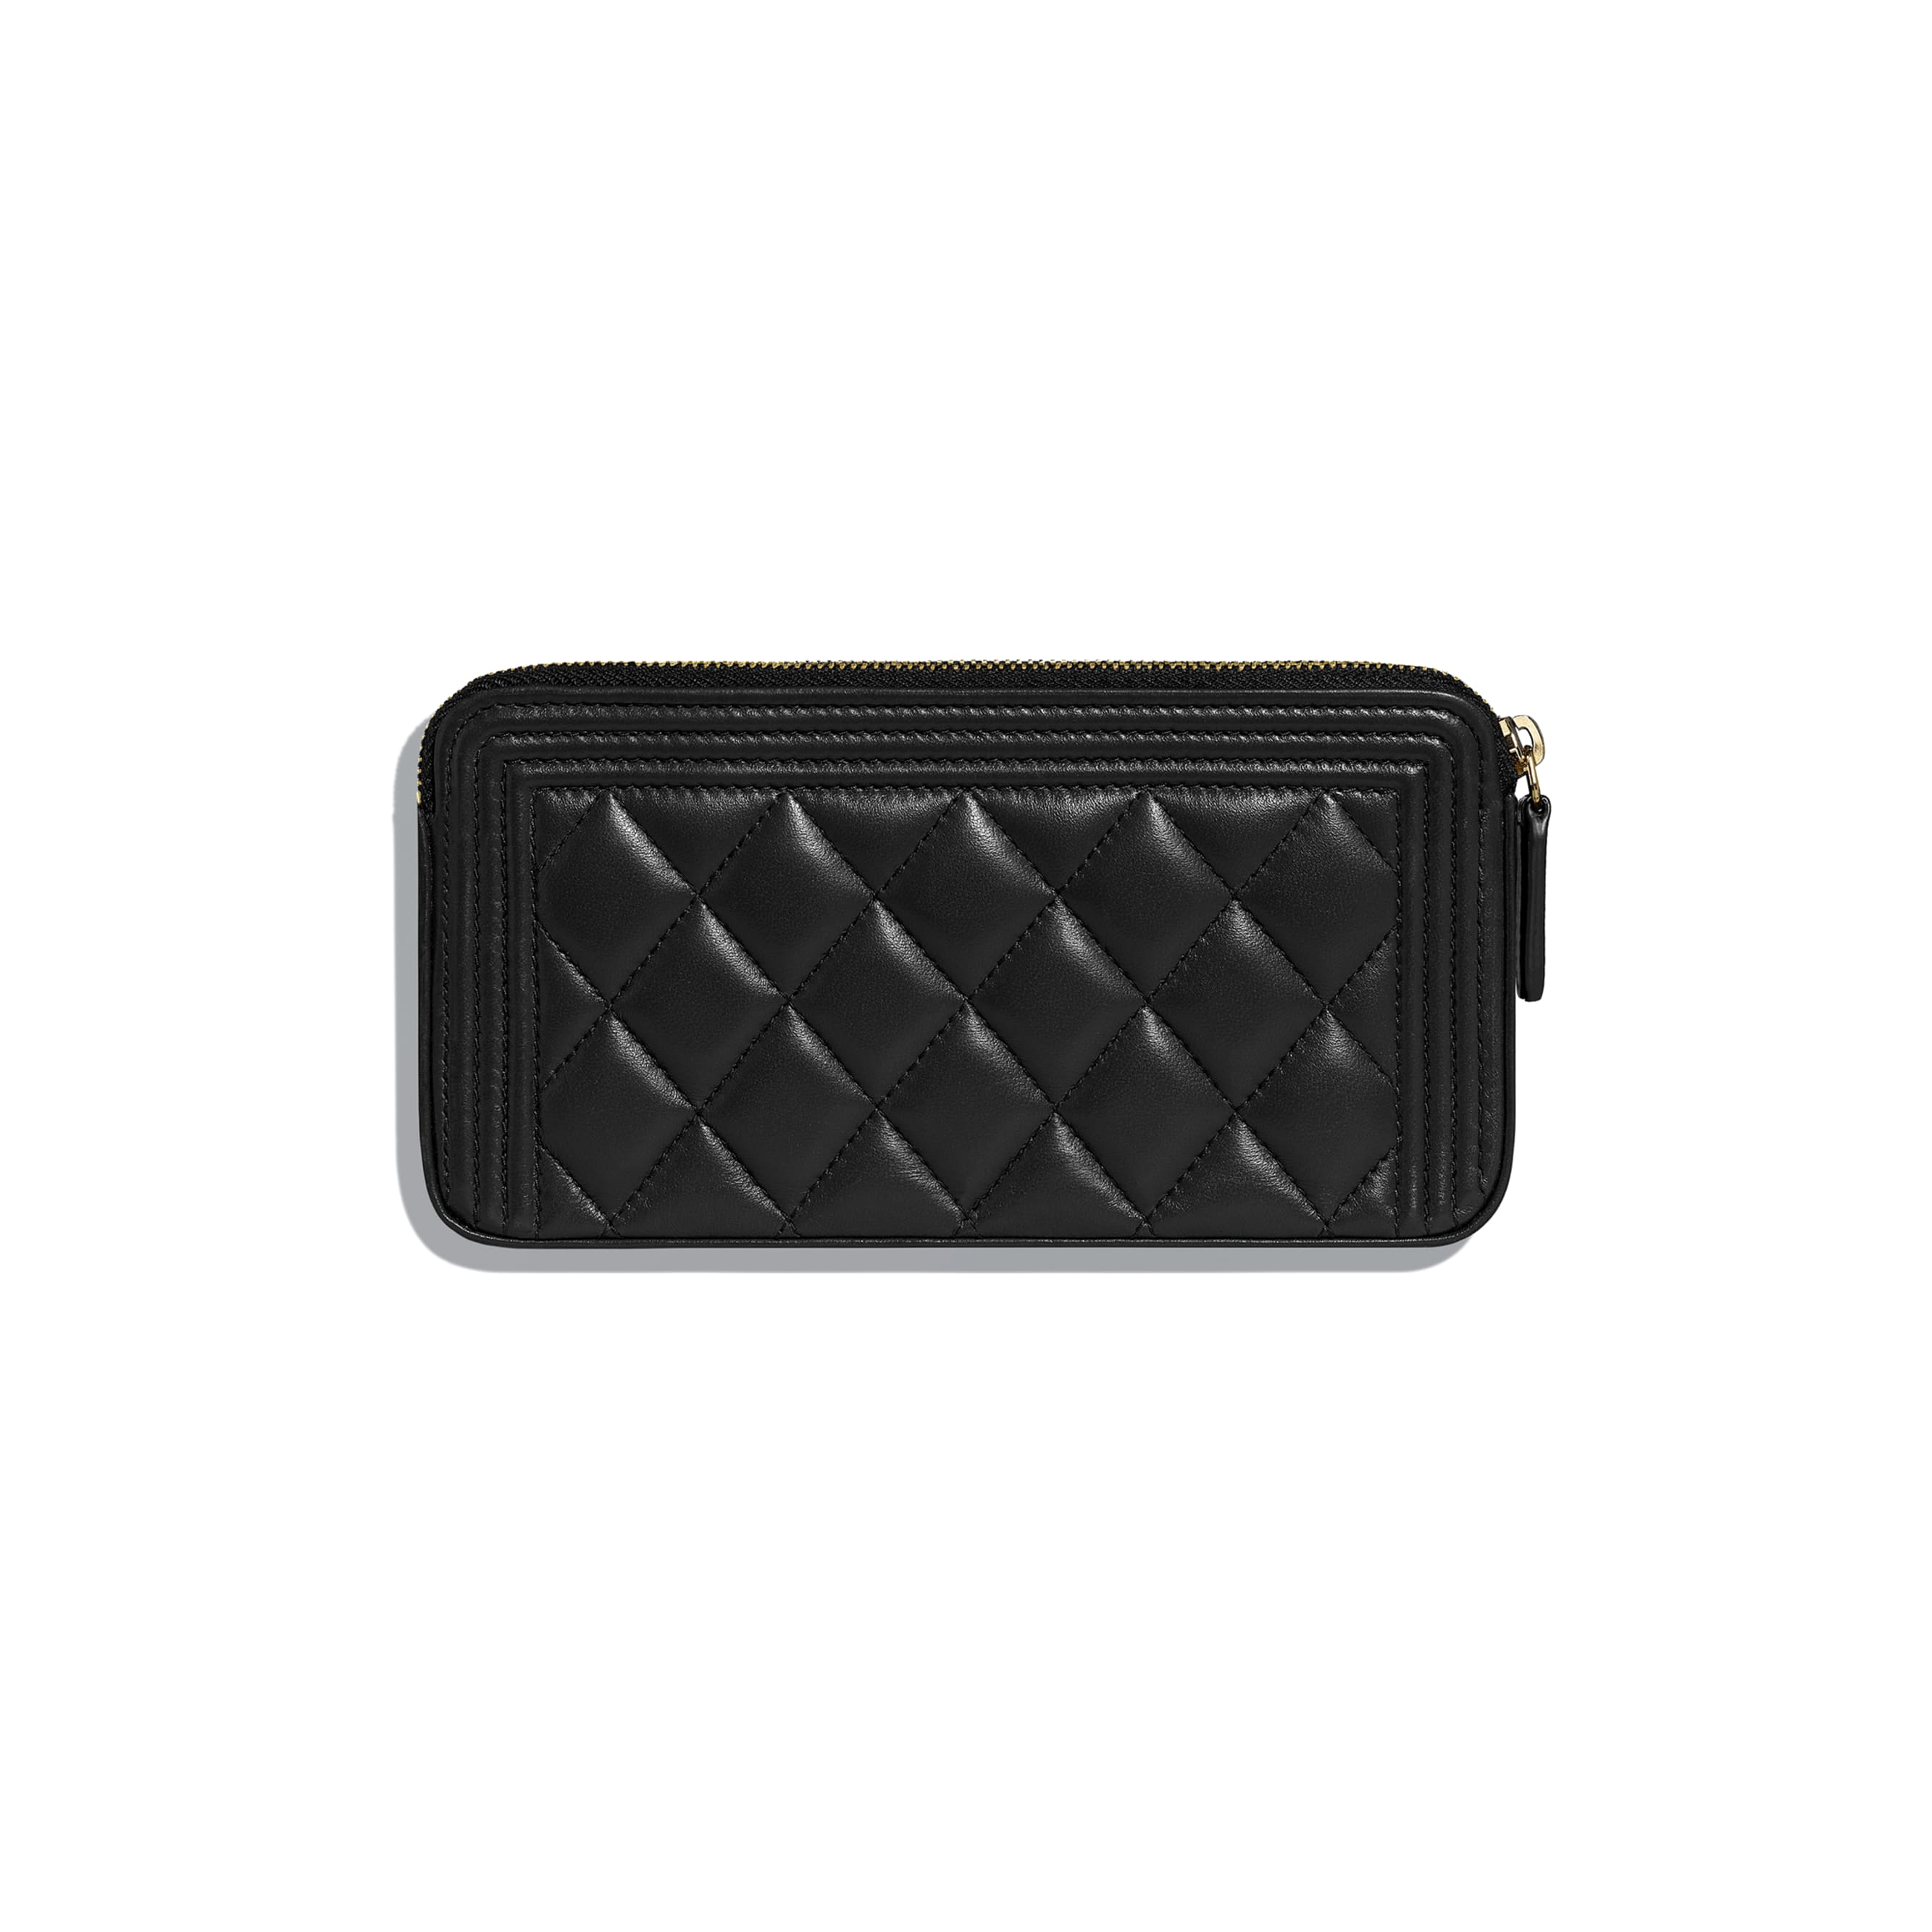 BOY CHANEL Clutch With Chain - Black - Lambskin - Alternative view - see standard sized version